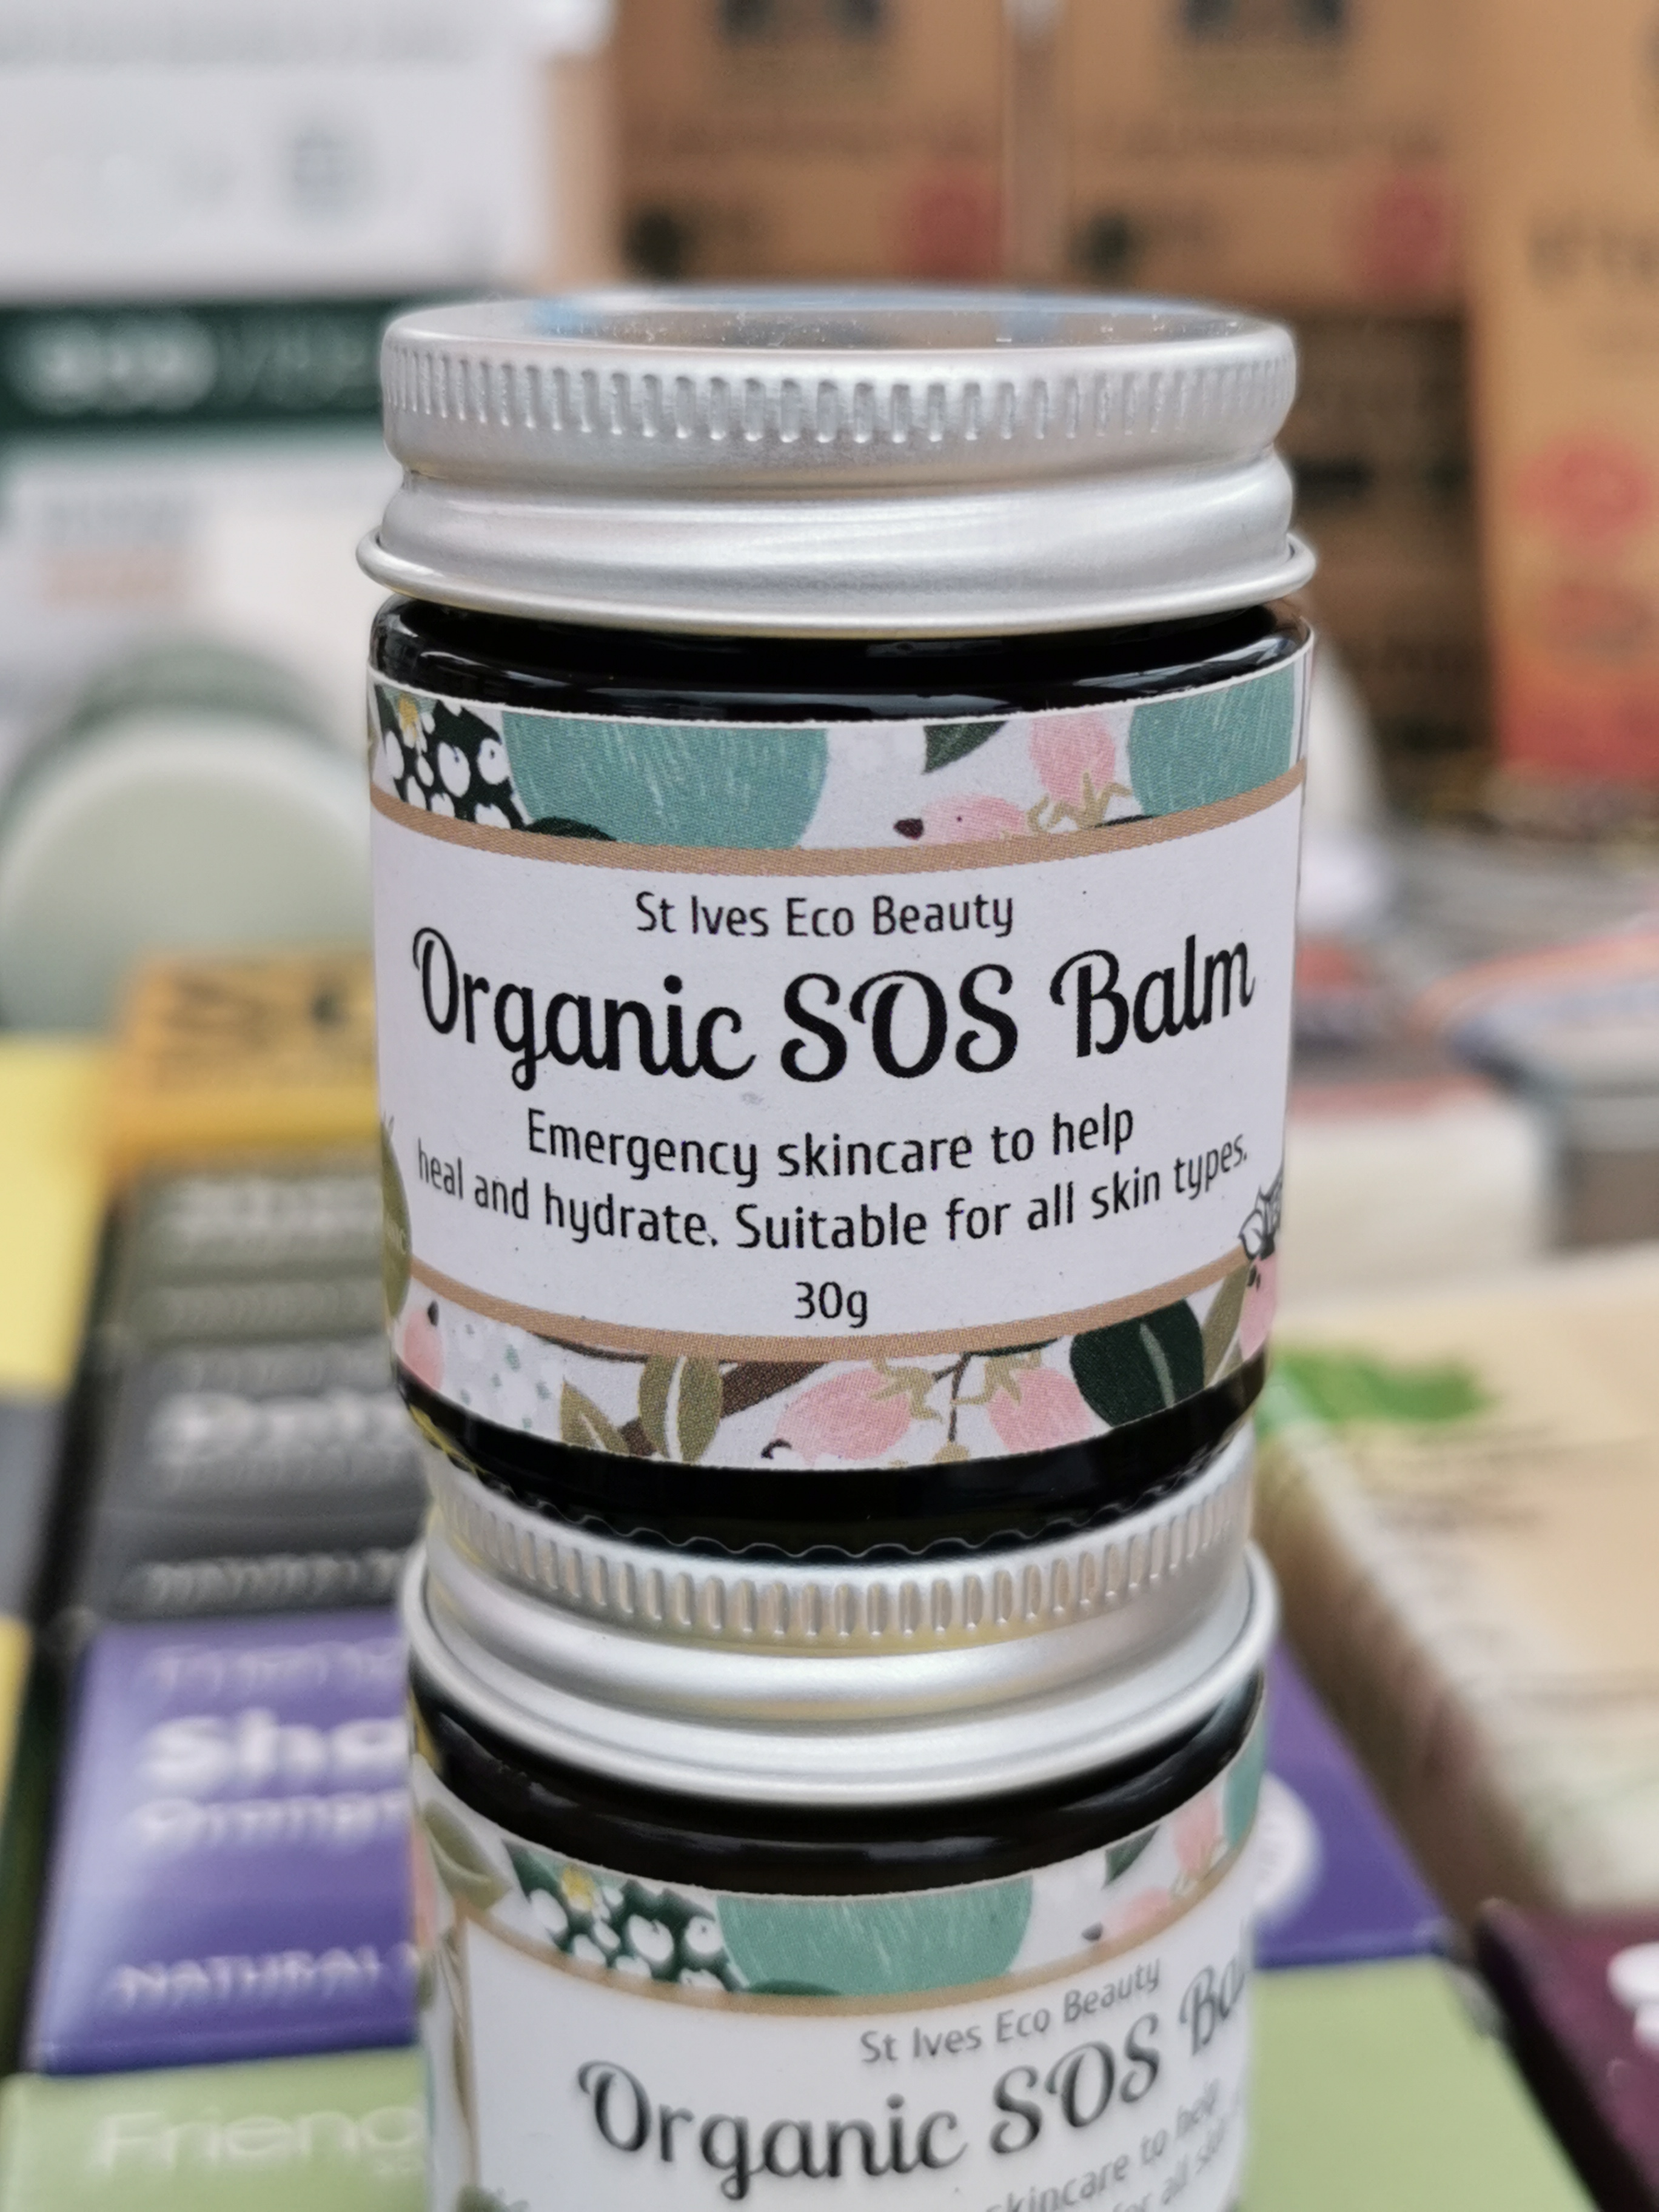 SOS Balm by St Ives Eco Beauty